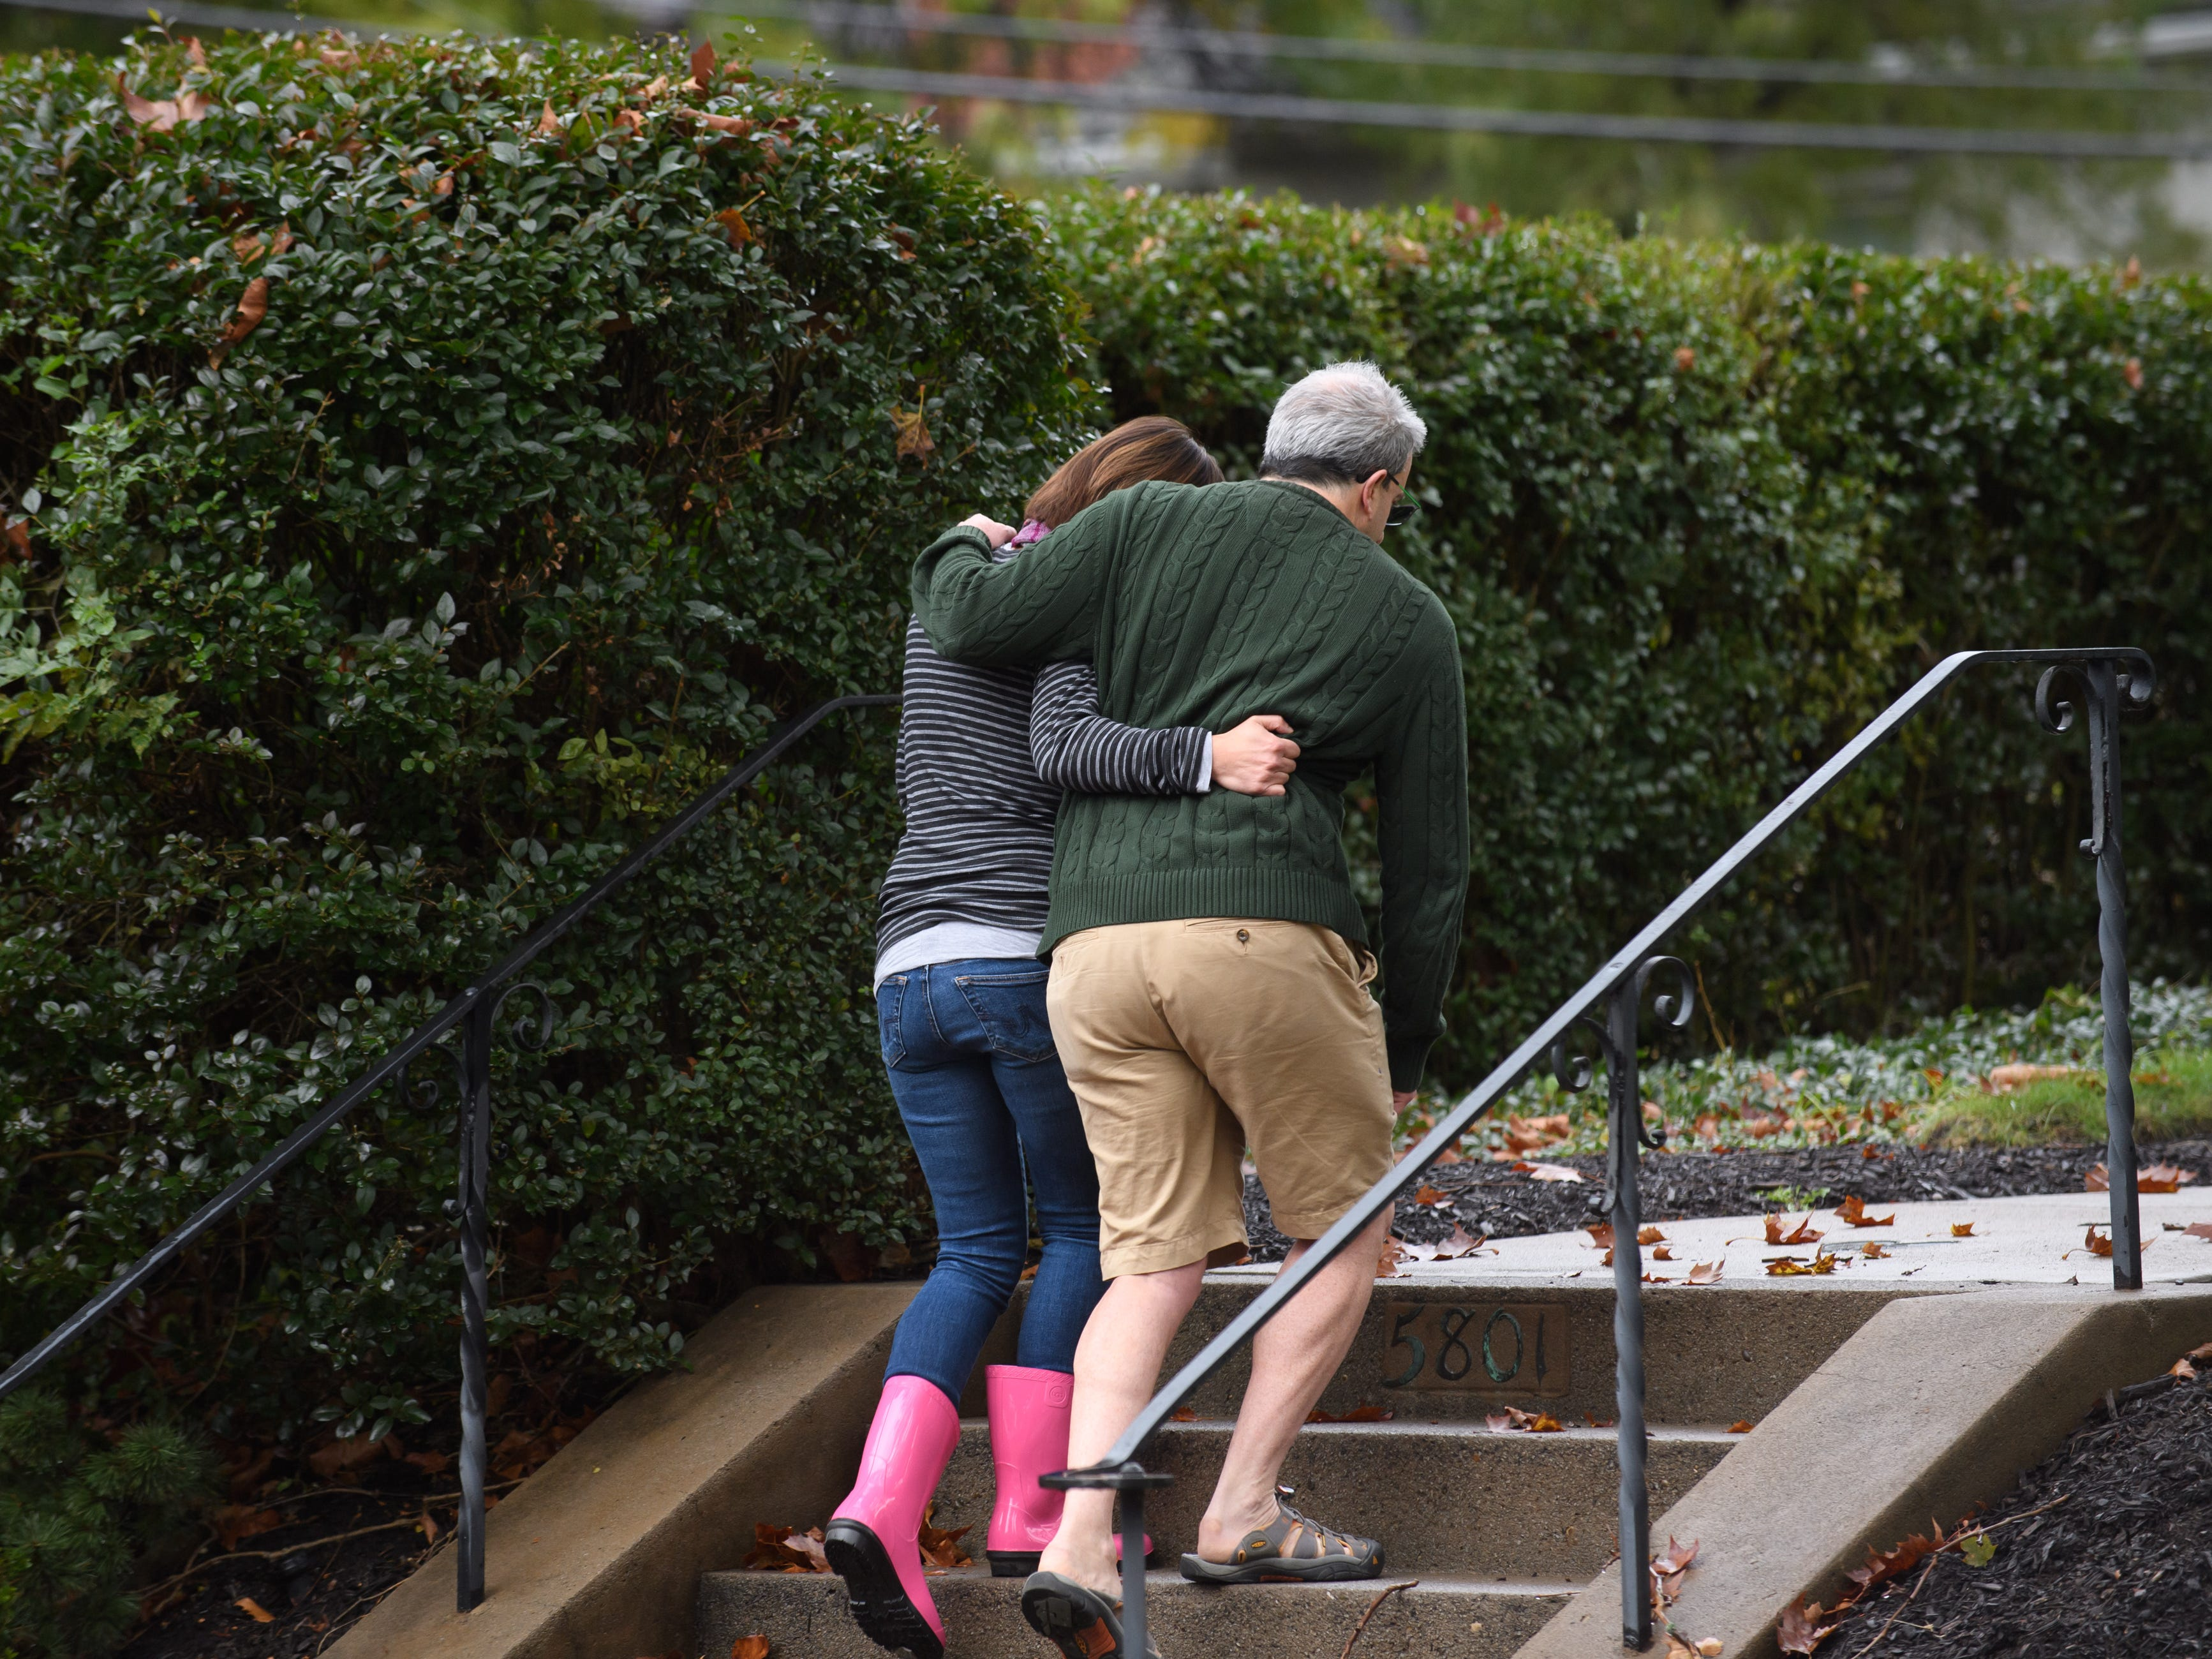 Neighbors around the corner from the site of a mass shooting at the Tree of Life Synagogue embrace one another in the Squirrel Hill neighborhood in Pittsburgh, Pa. on Oct. 27, 2018.